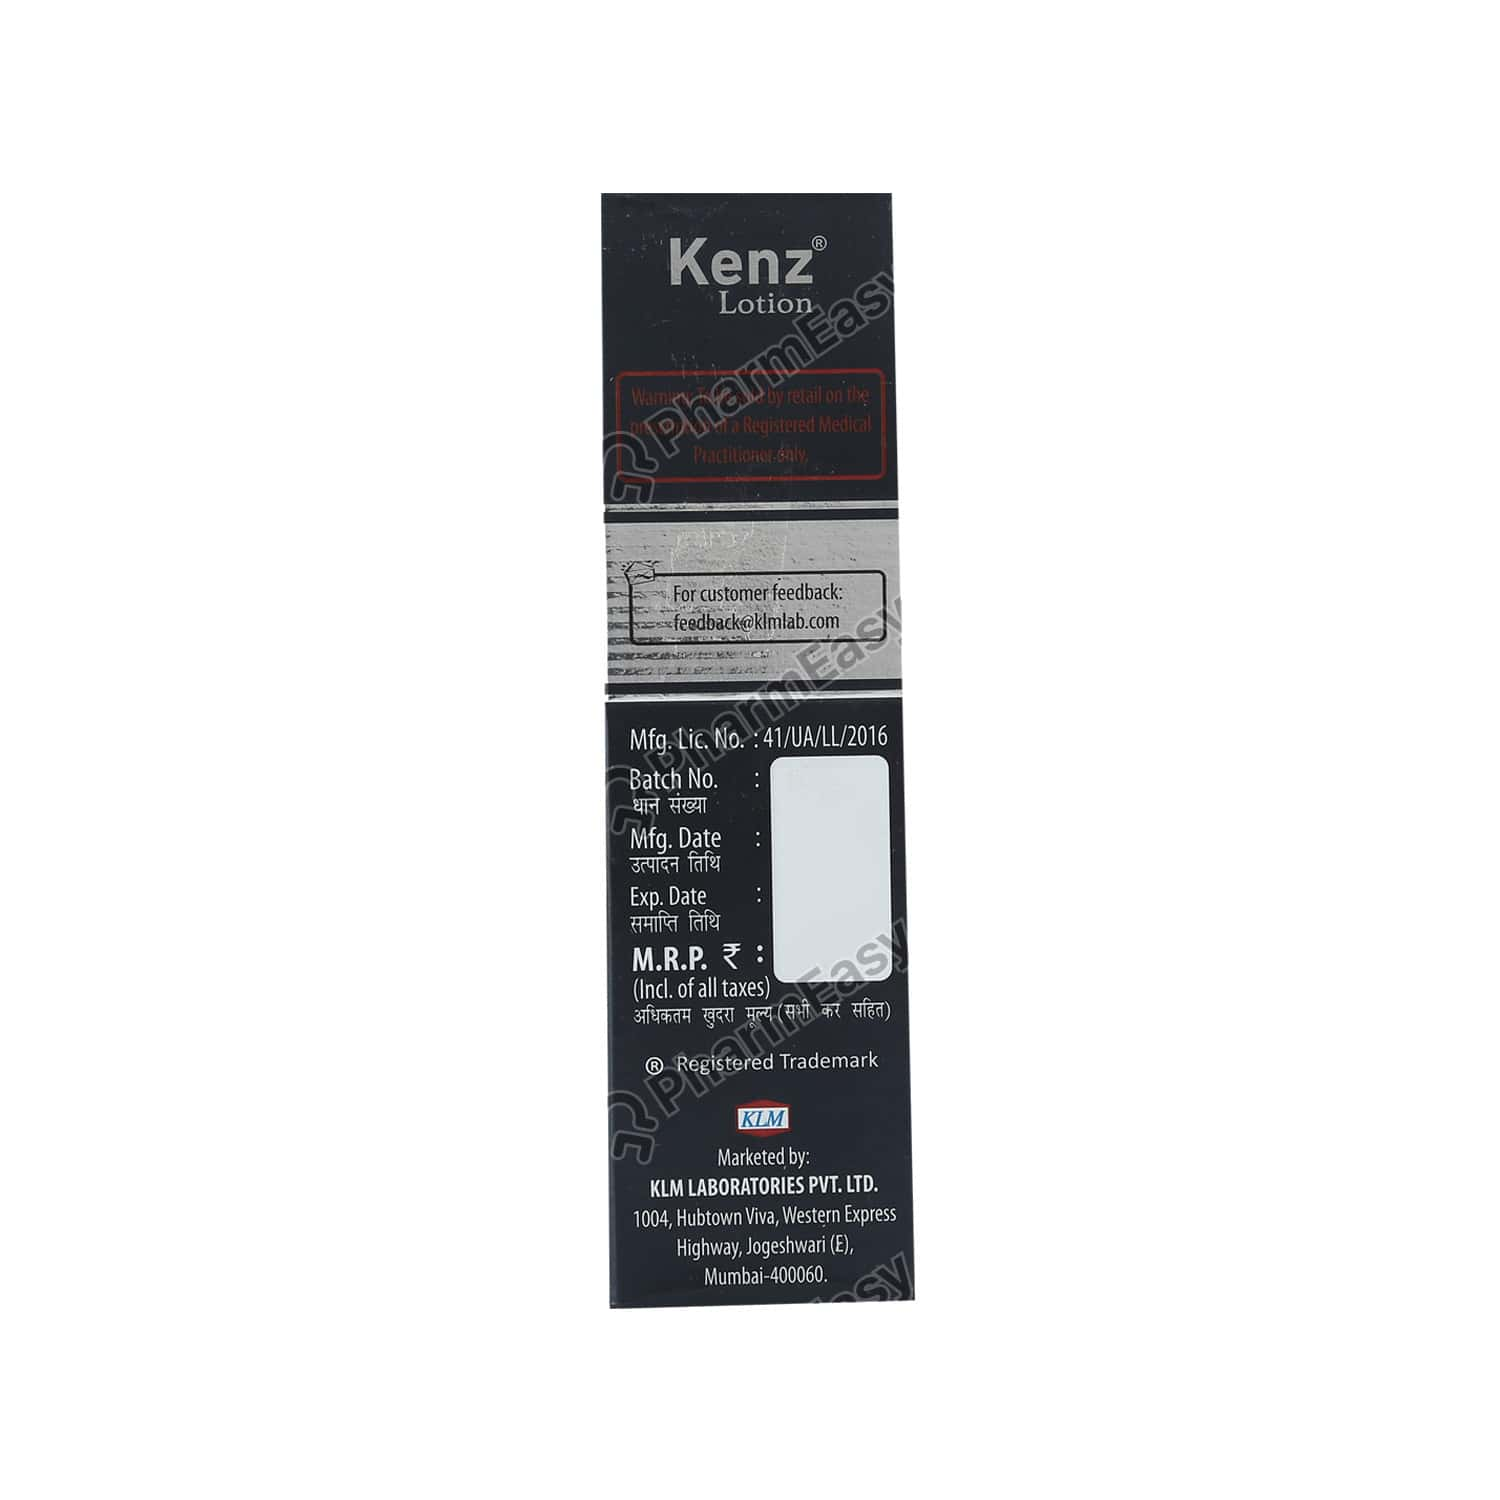 Kenz 2% Lotion 60ml